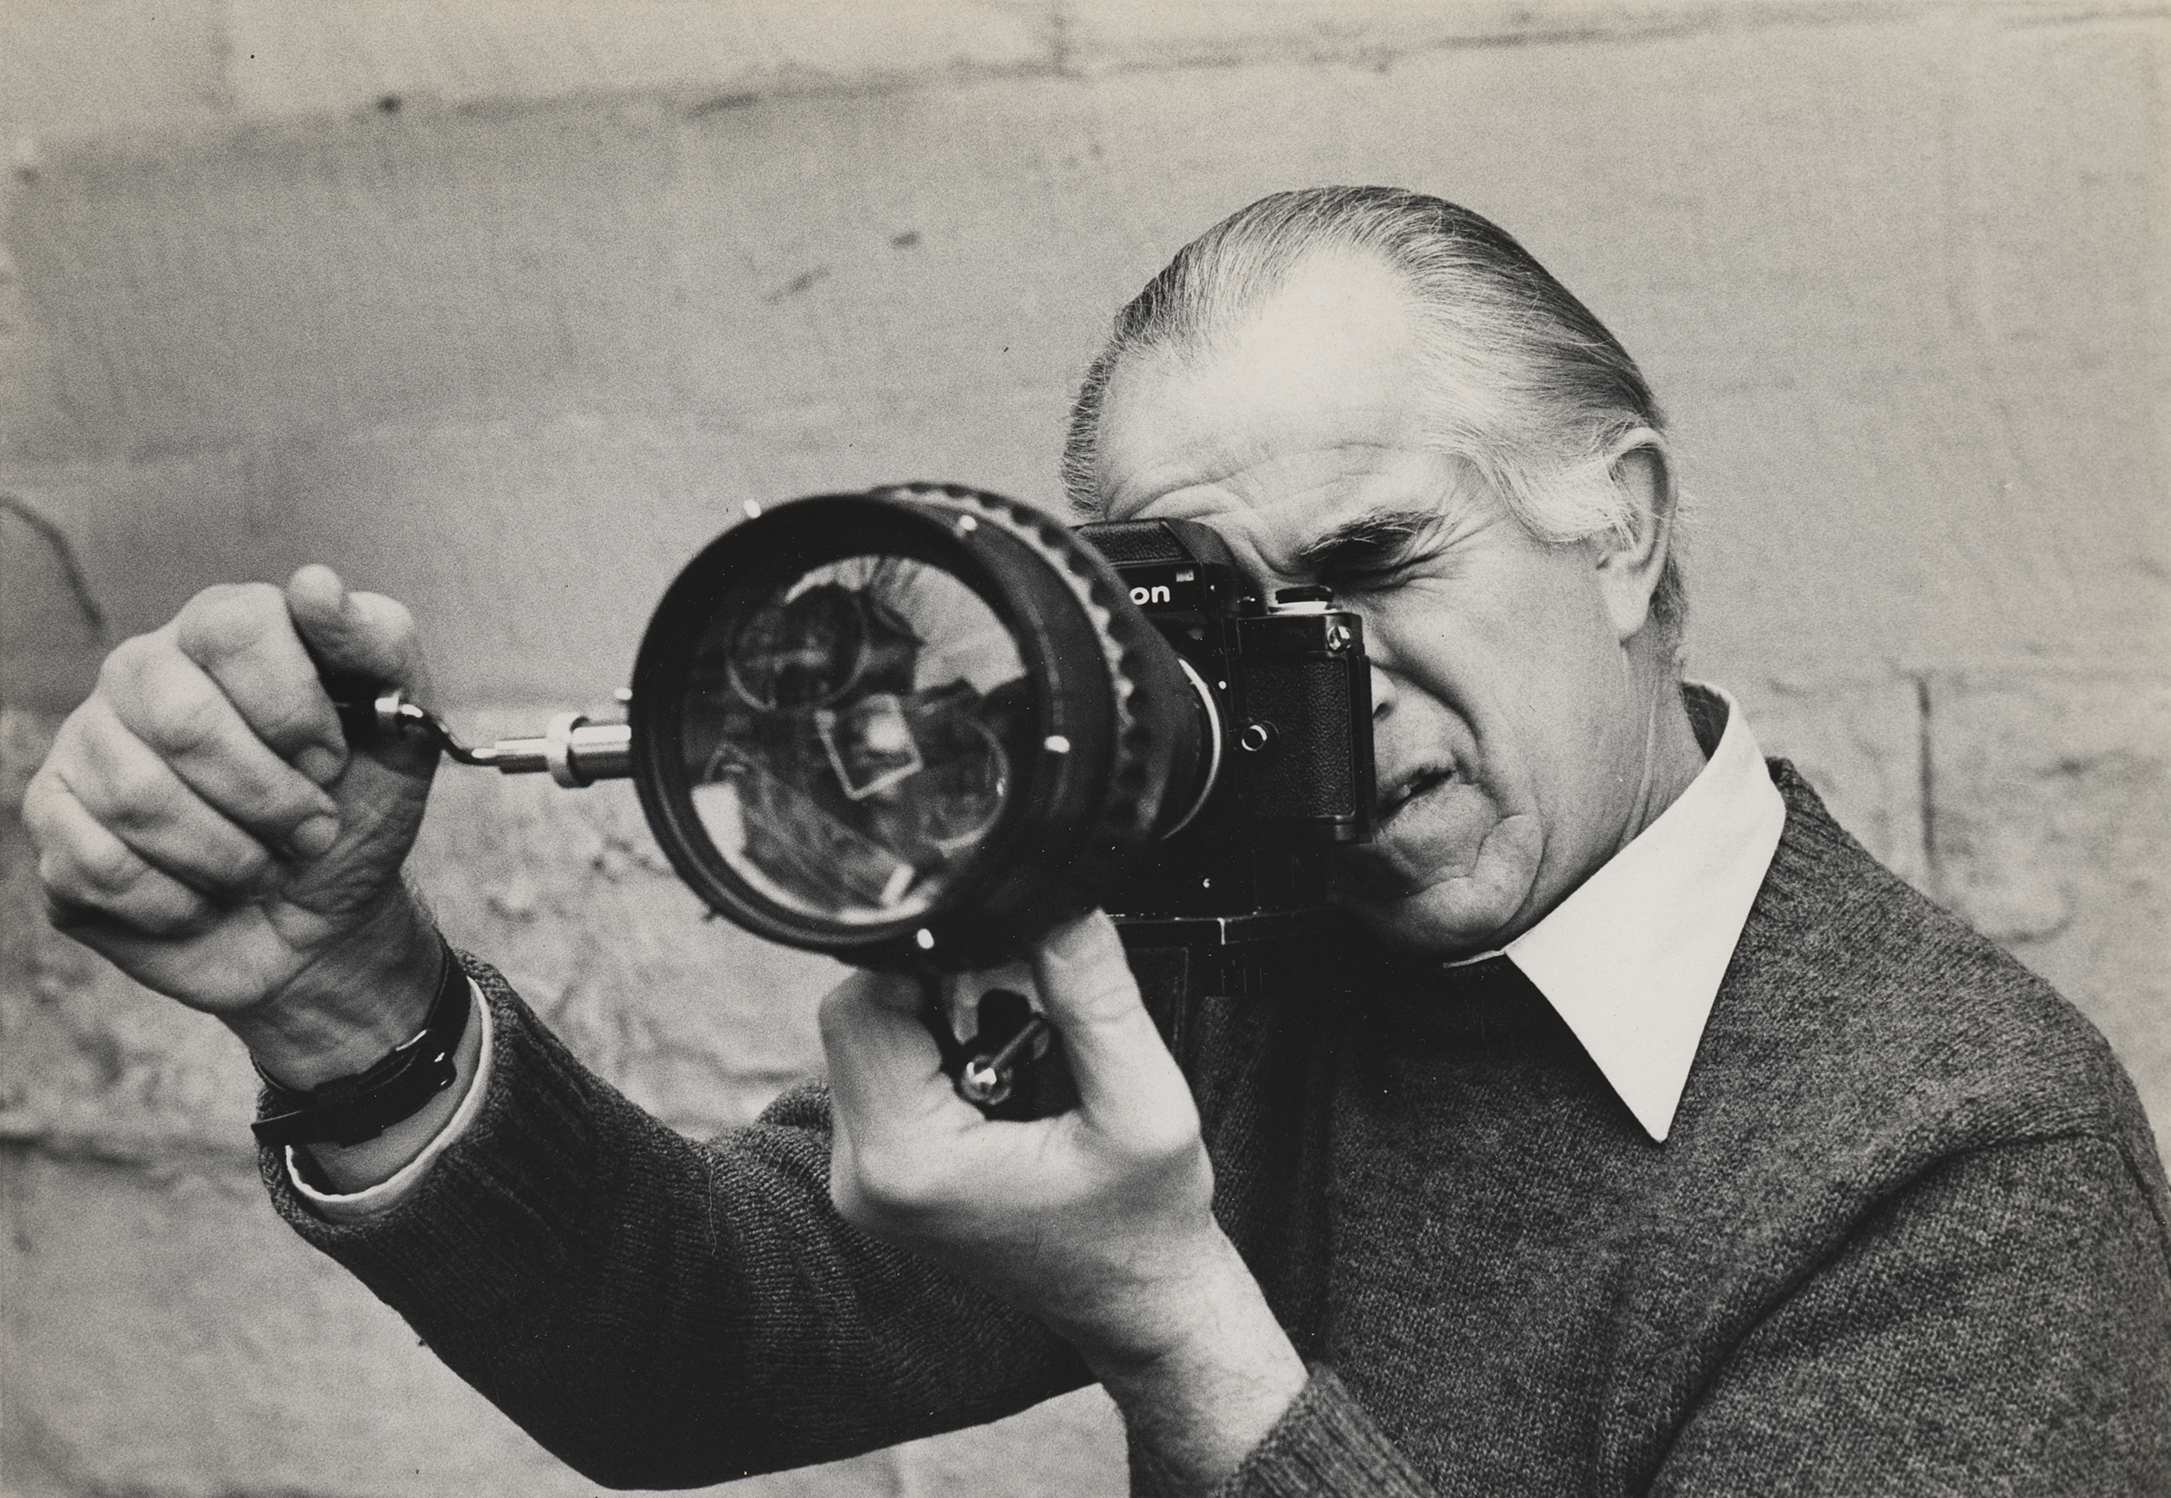 David Douglas Duncan, Photographer Of Wars And Picasso, Dies At 102